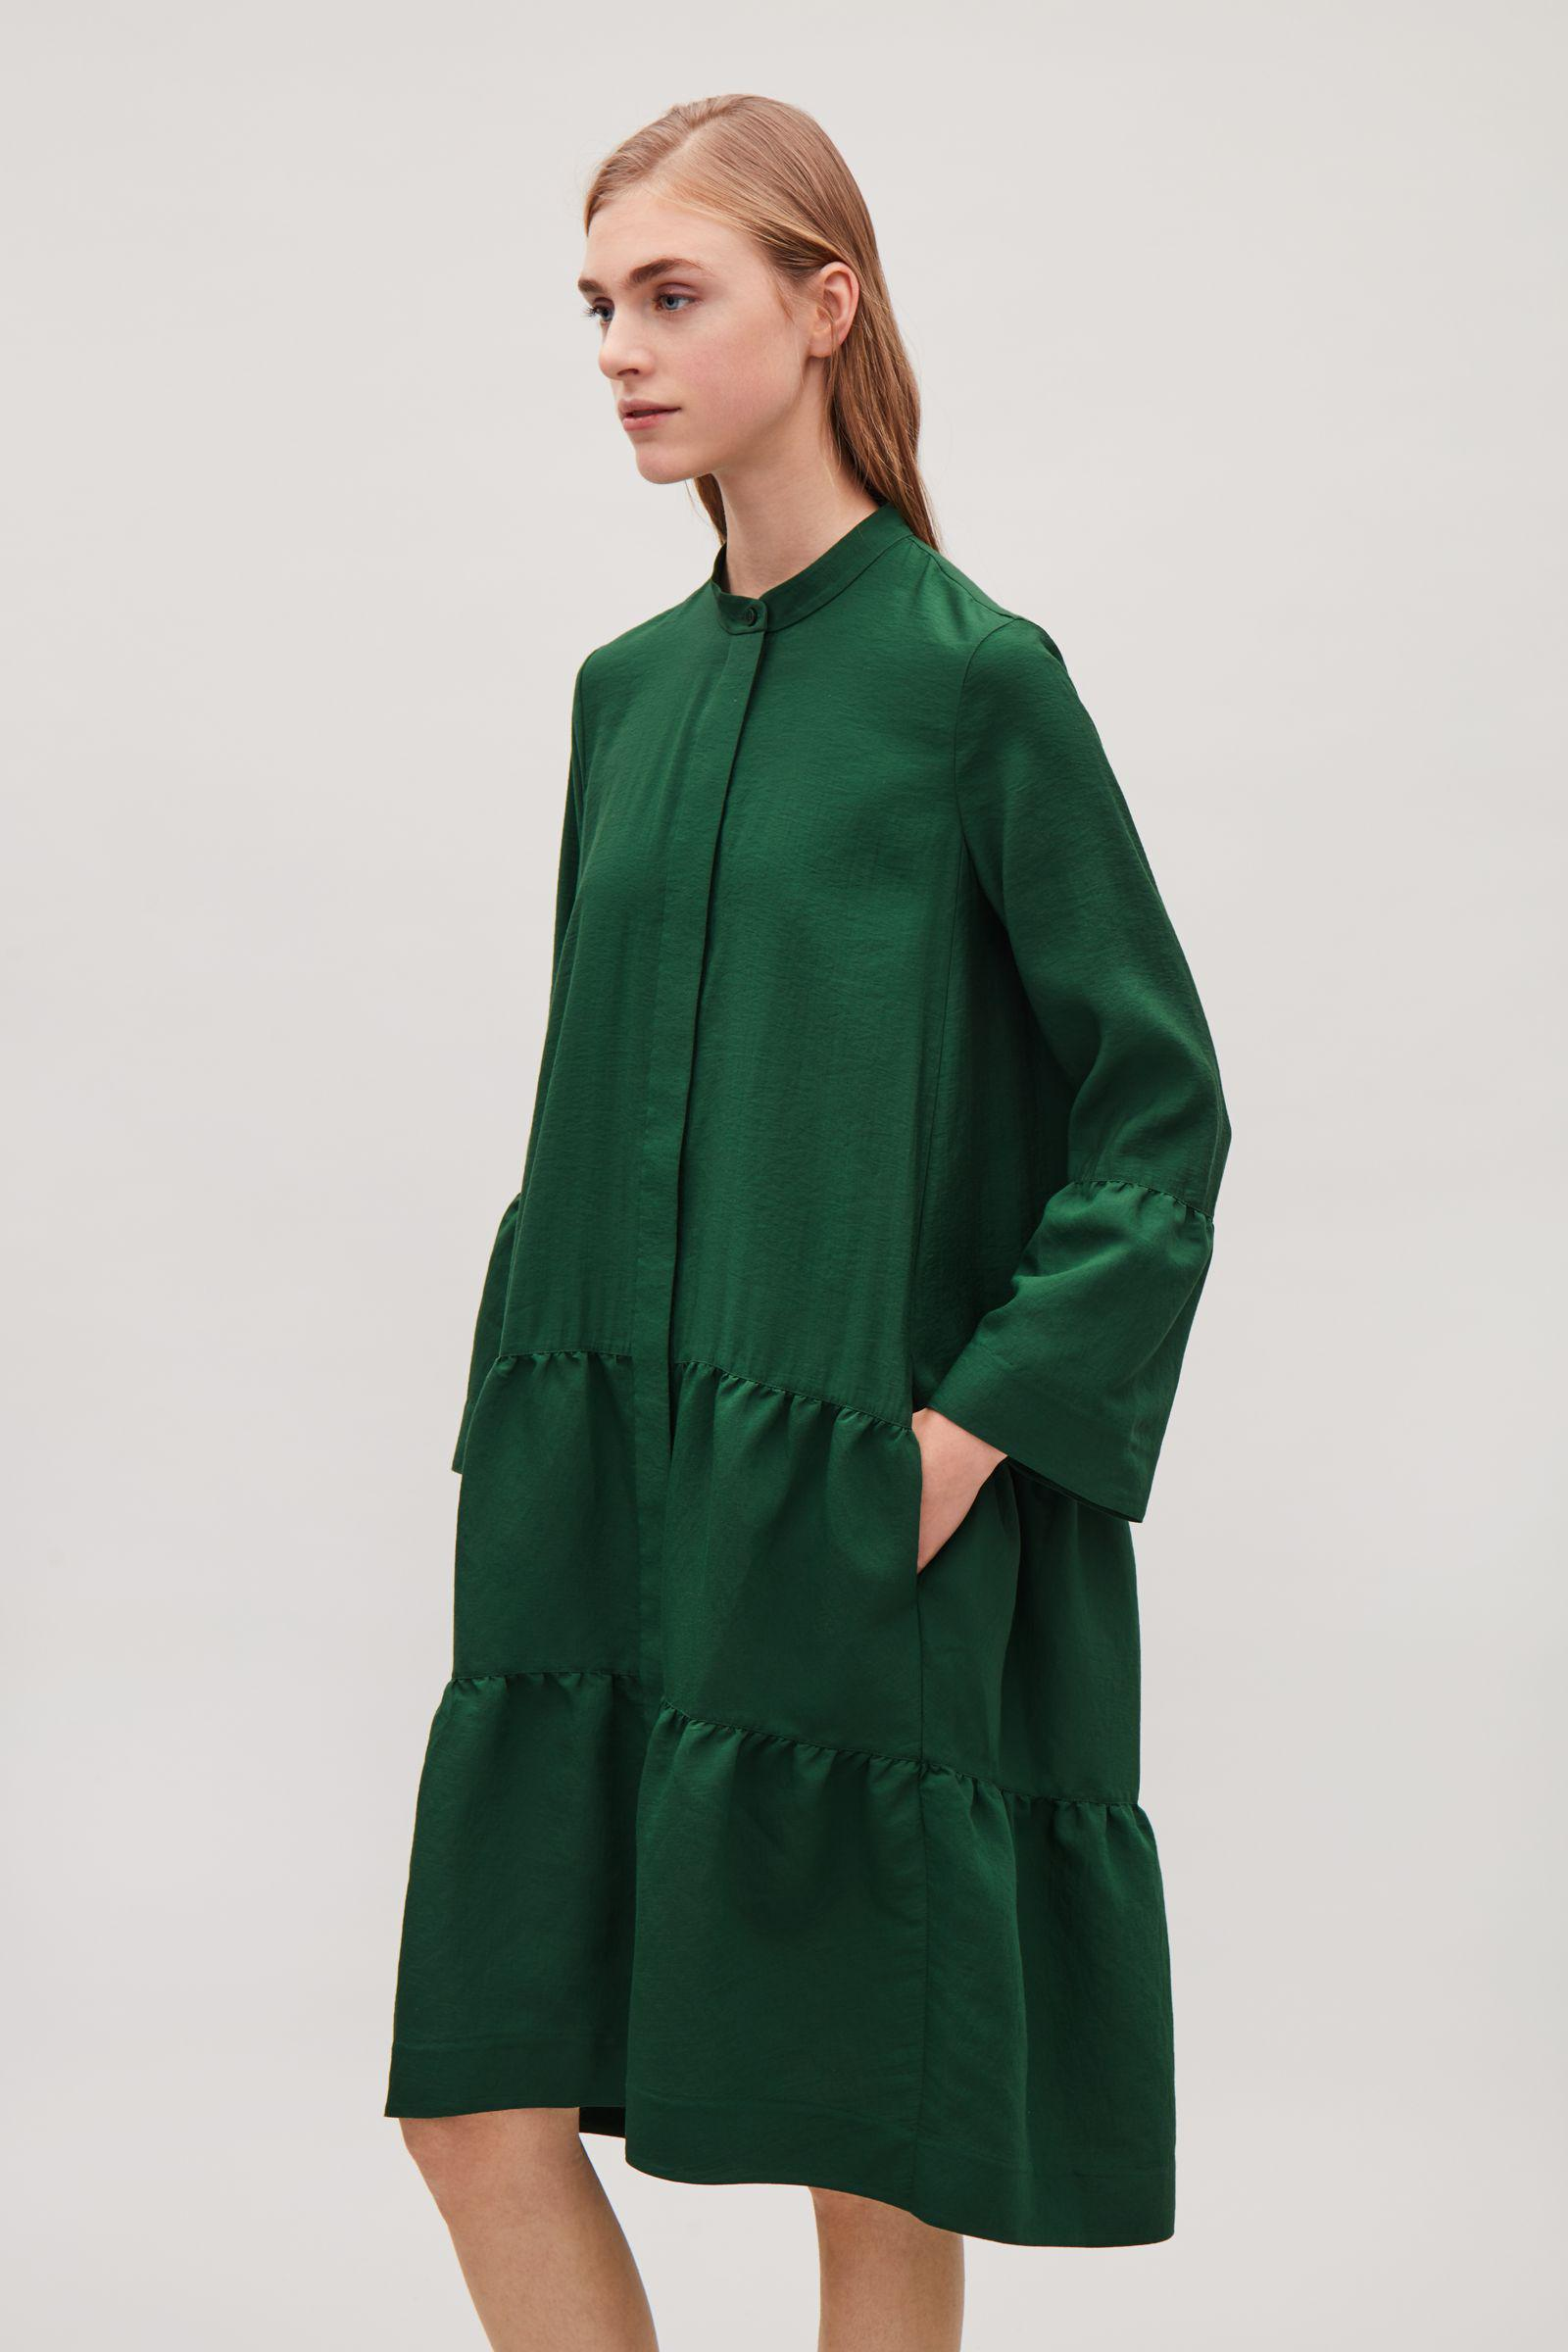 829be2b1dabc Gallery. Previously sold at: COS · Women's Shirt Dresses